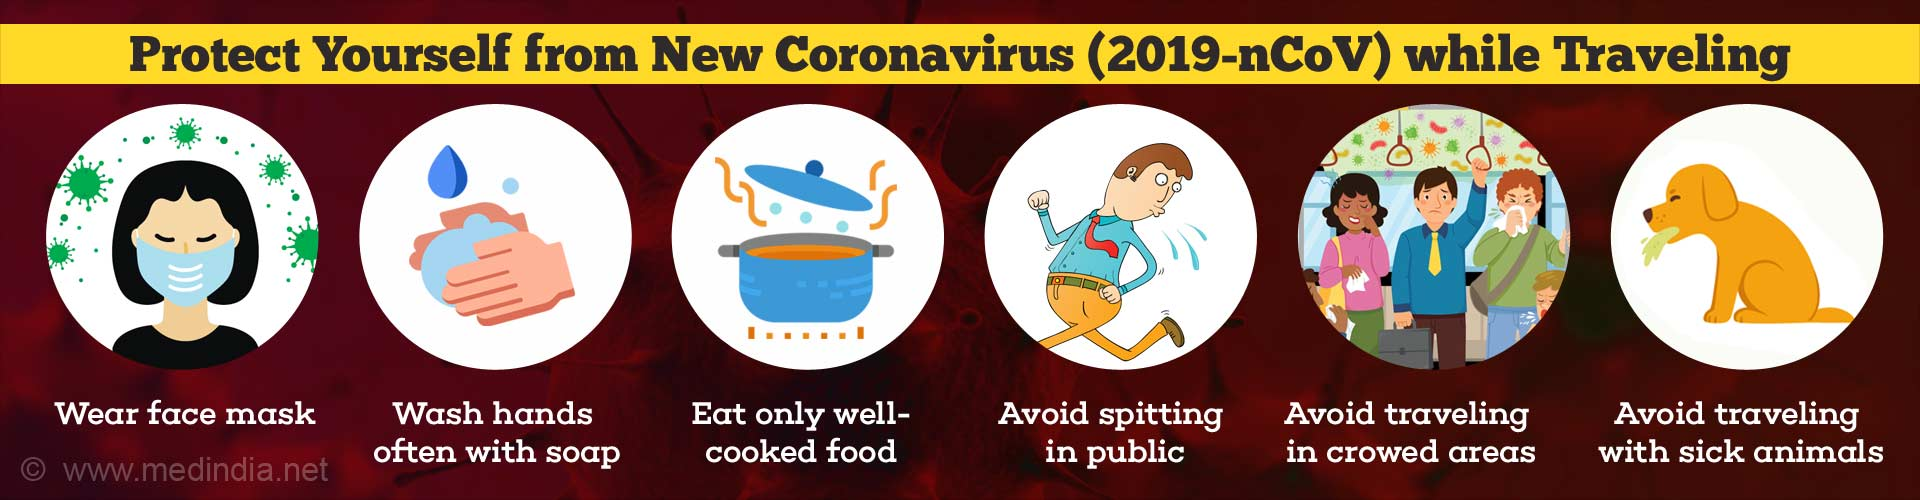 Protect yourself from new Coronavirus (2019-nCoV) while traveling. Wear face mask, wash hands often with soap, eat only well-cooked food, avoid spitting in public, avoid traveling in crowed areas, and avoid traveling with sick animals.